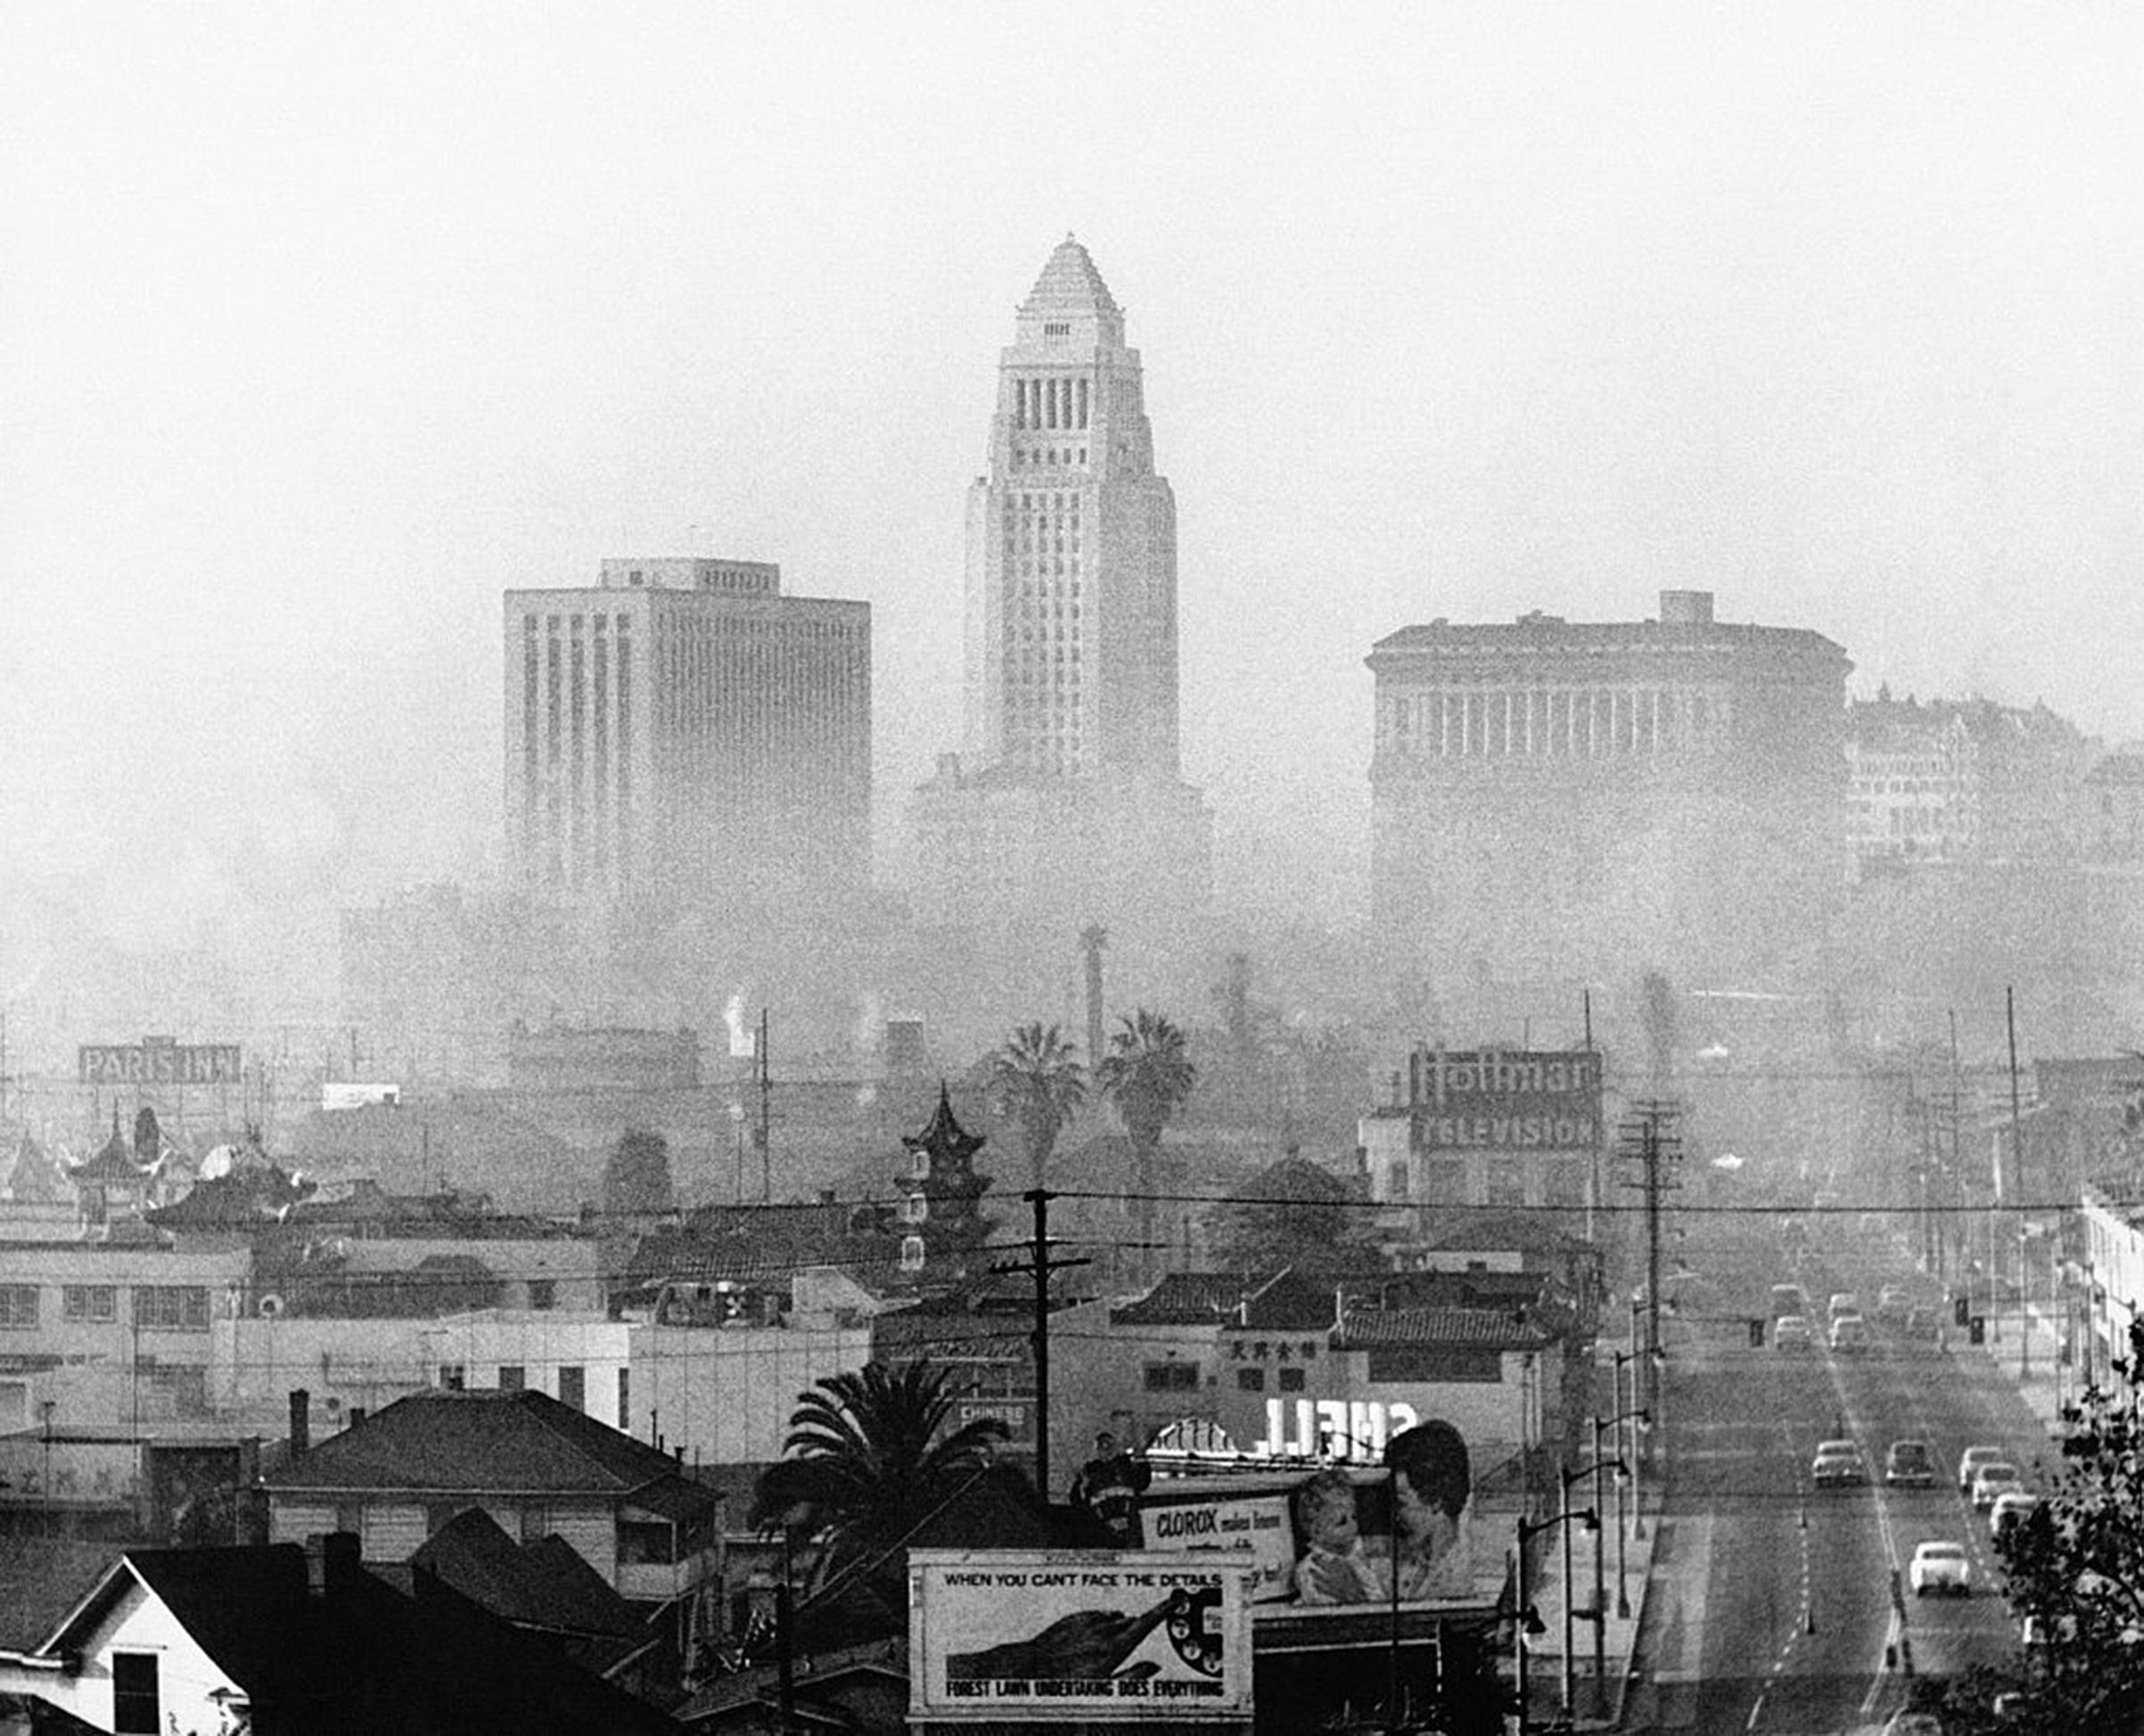 The Los Angeles skyline circa 1970.